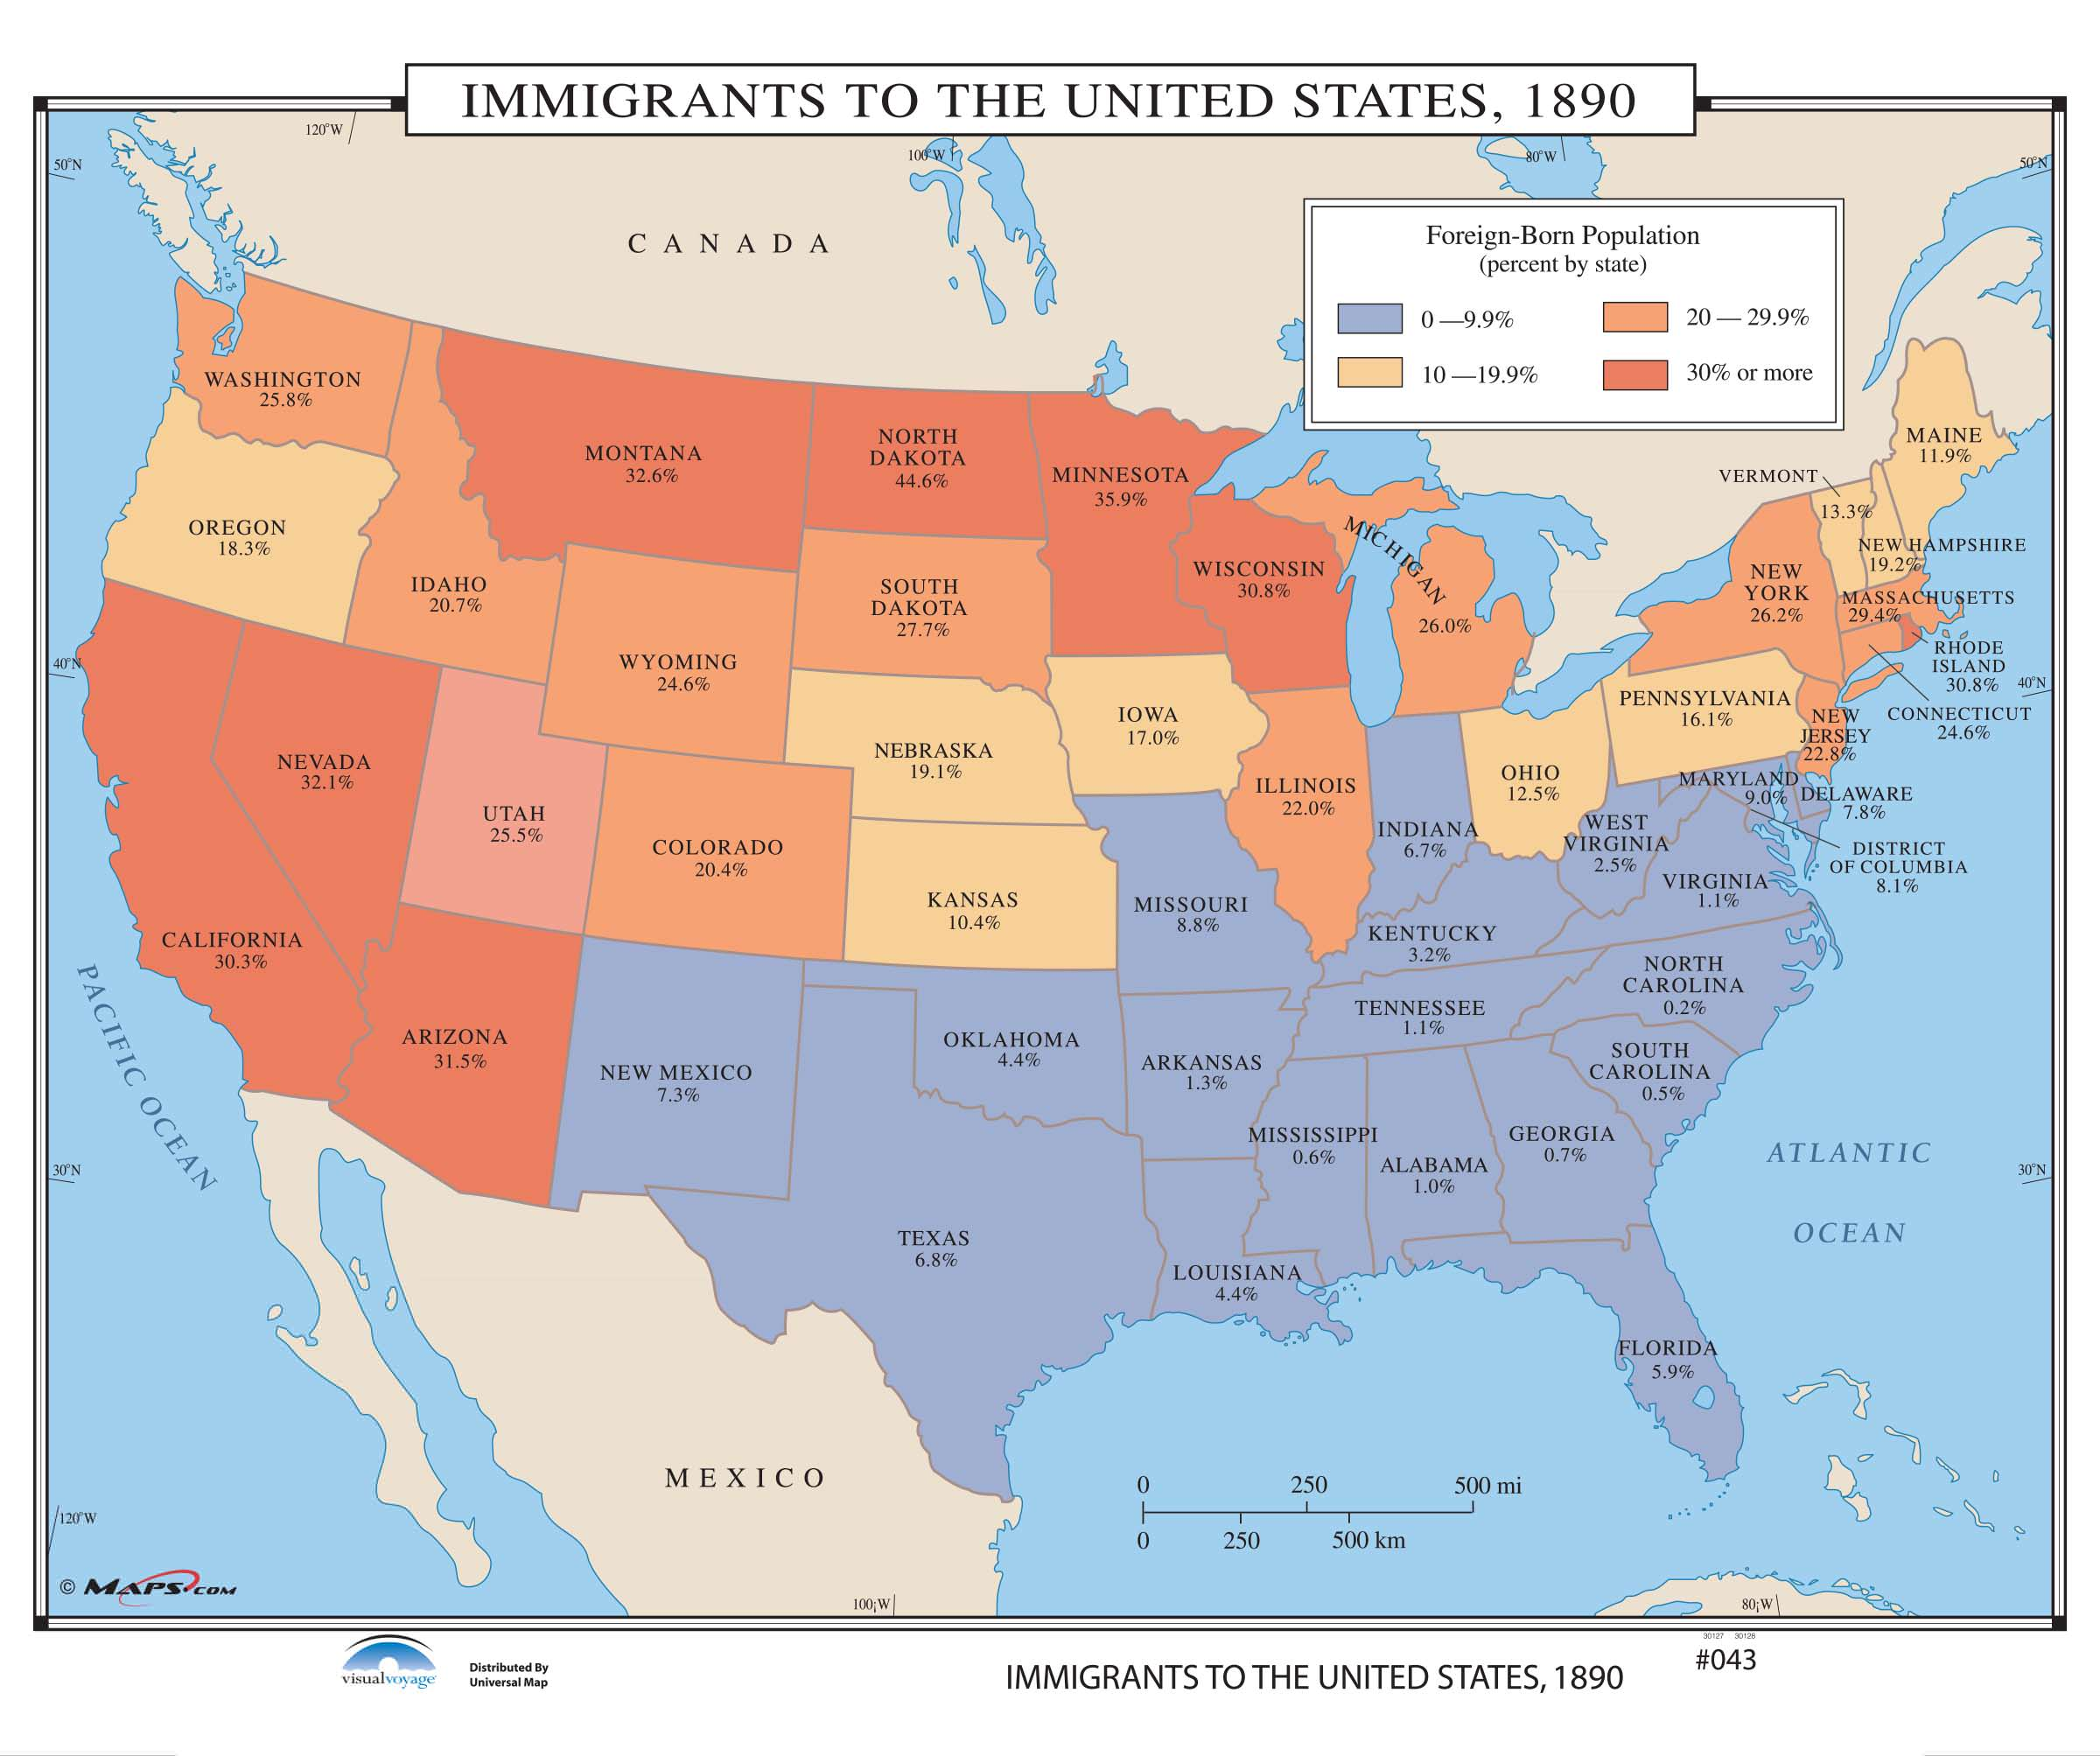 043 Immigrants to the US, 1890 – KAPPA MAP GROUP